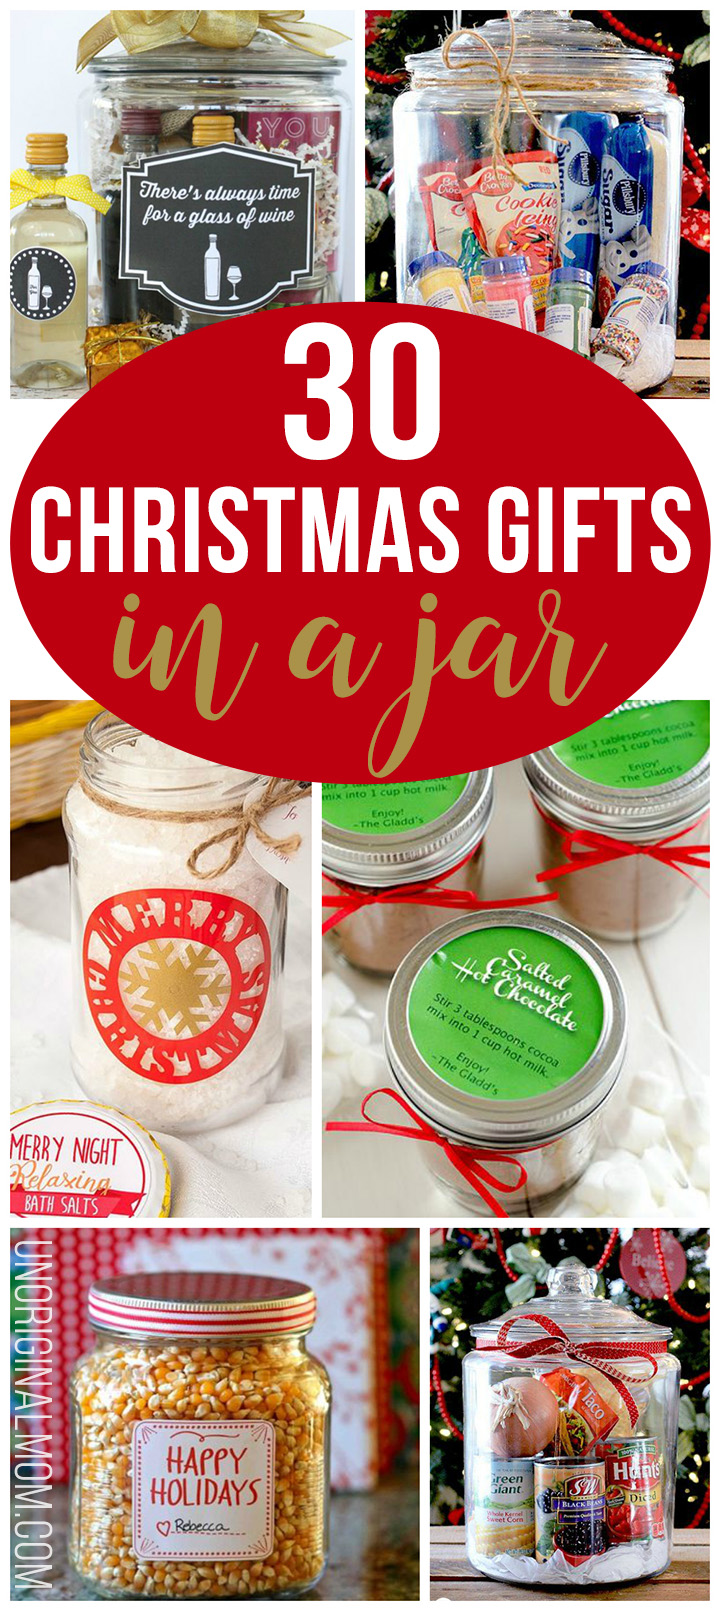 30 Christmas Gifts in a Jar - unOriginal Mom